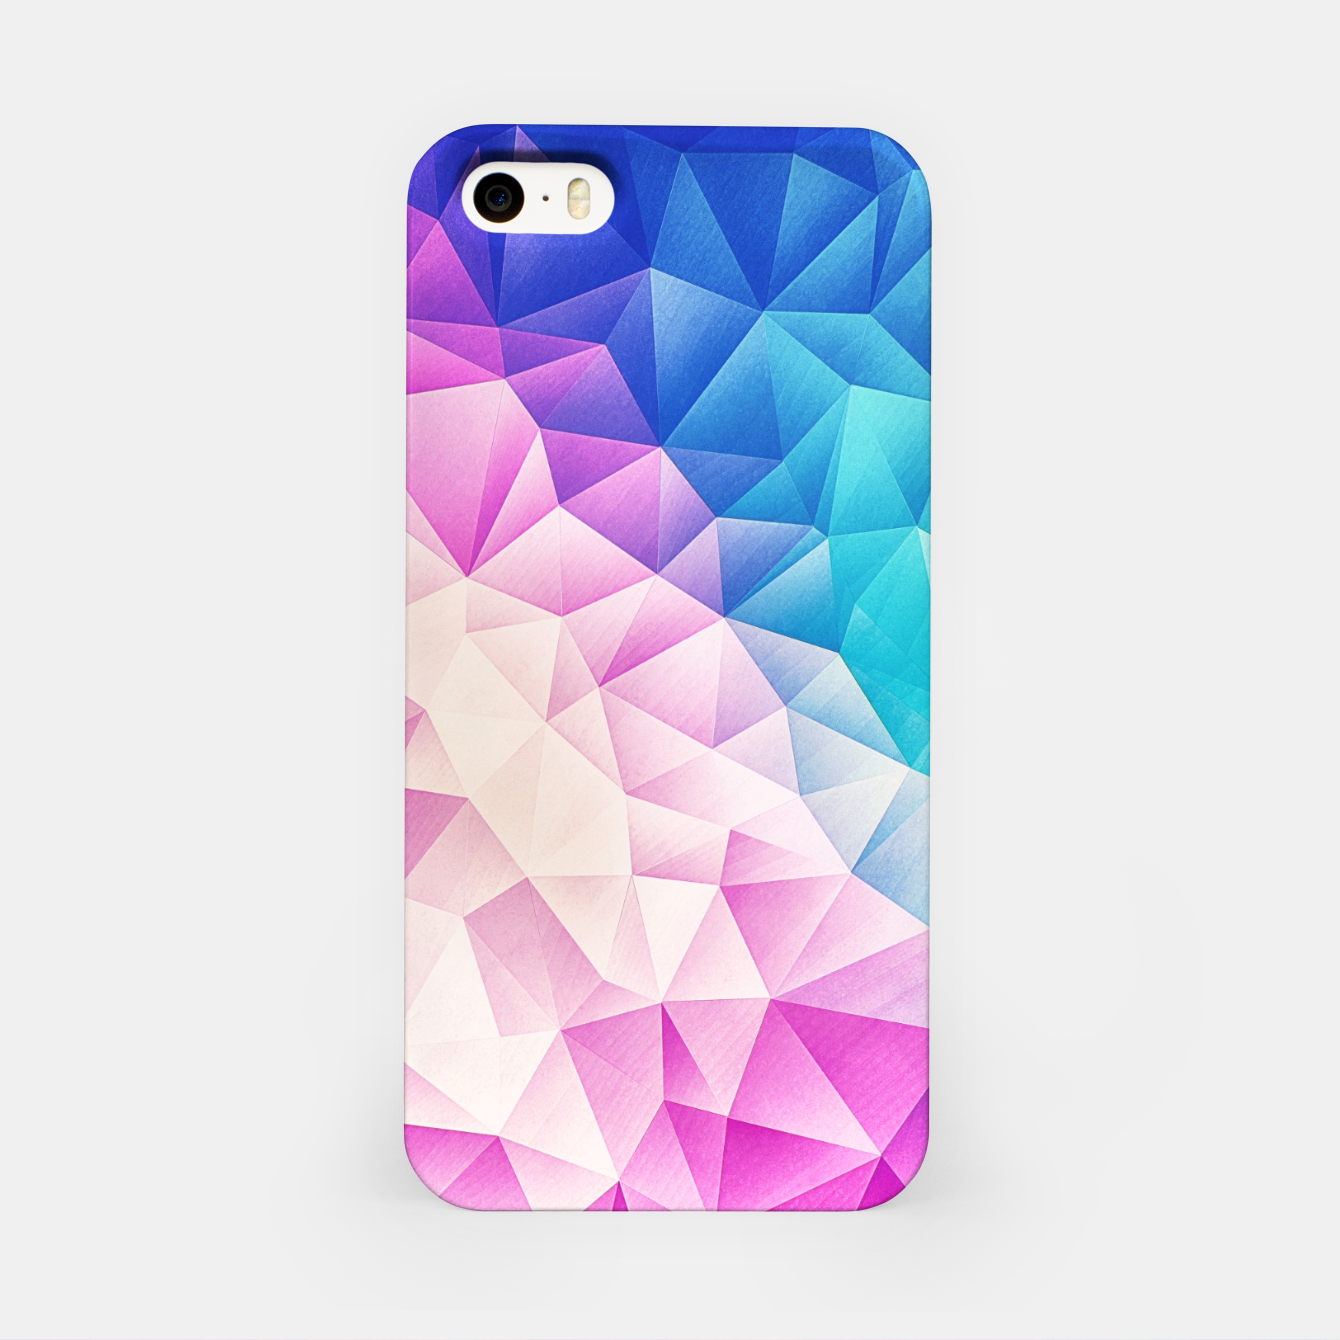 Image de Pink - Ice Blue / Abstract Polygon Crystal Cubism Low Poly Triangle Design iPhone Case - Live Heroes